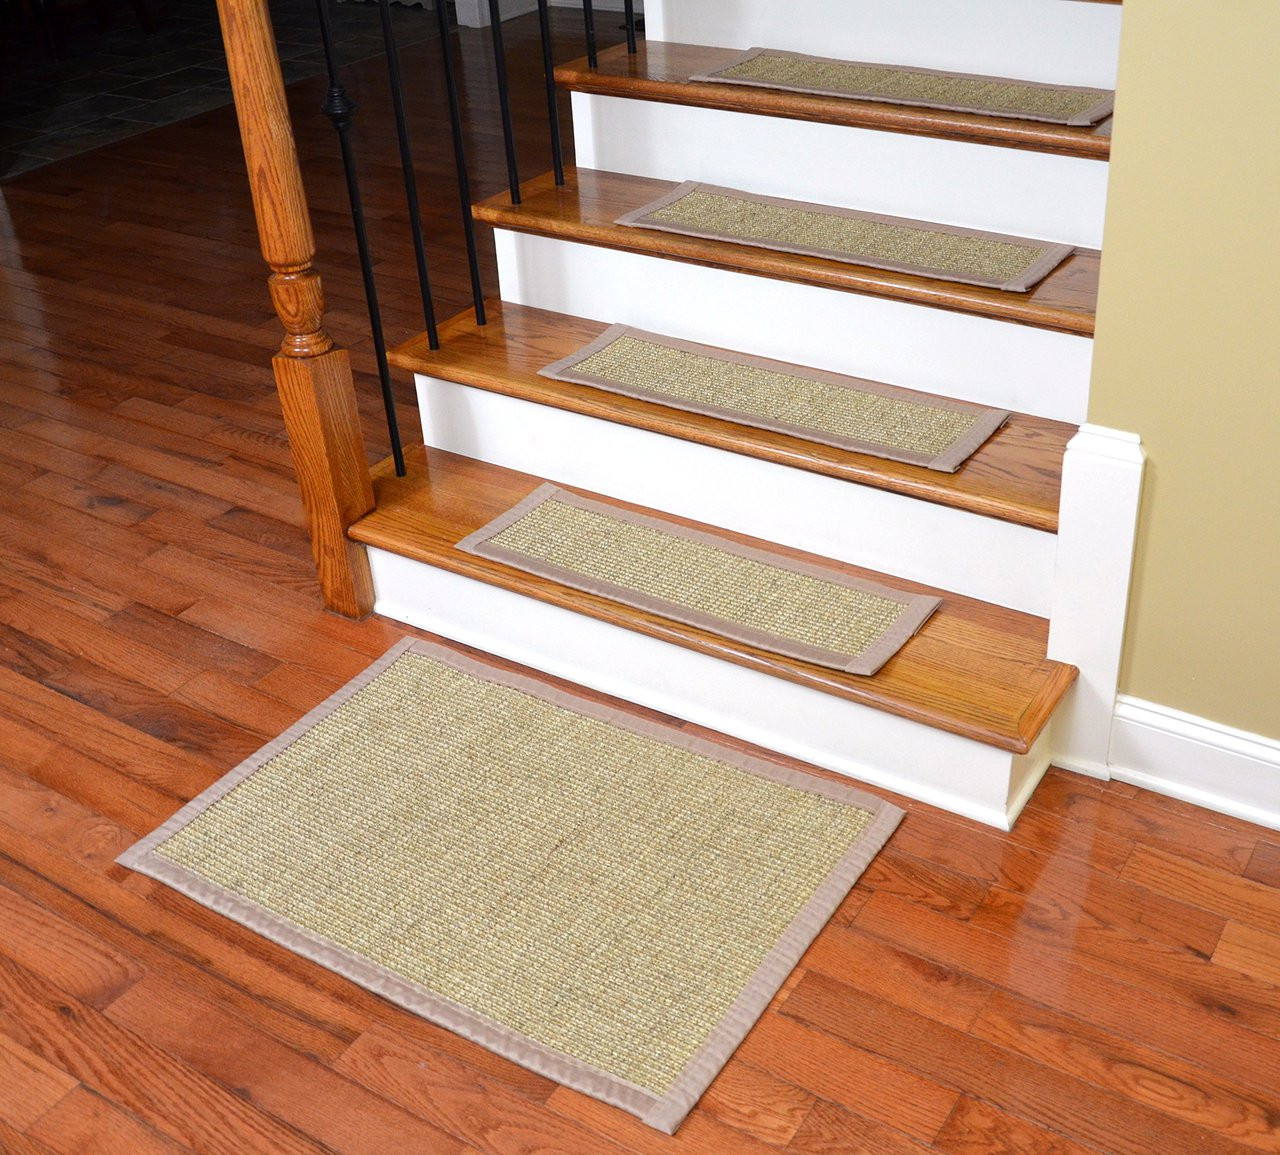 Dean sisal carpet stair treads set of 13 w landing mat - Rugs and runners to match ...